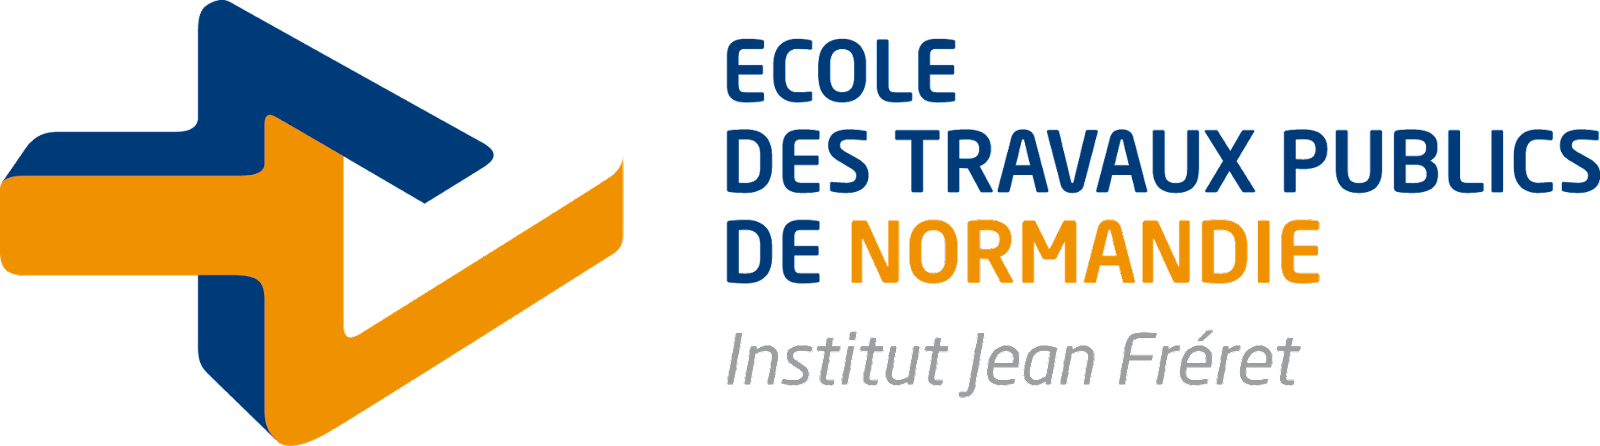 LOGO_ETPN transparent.png